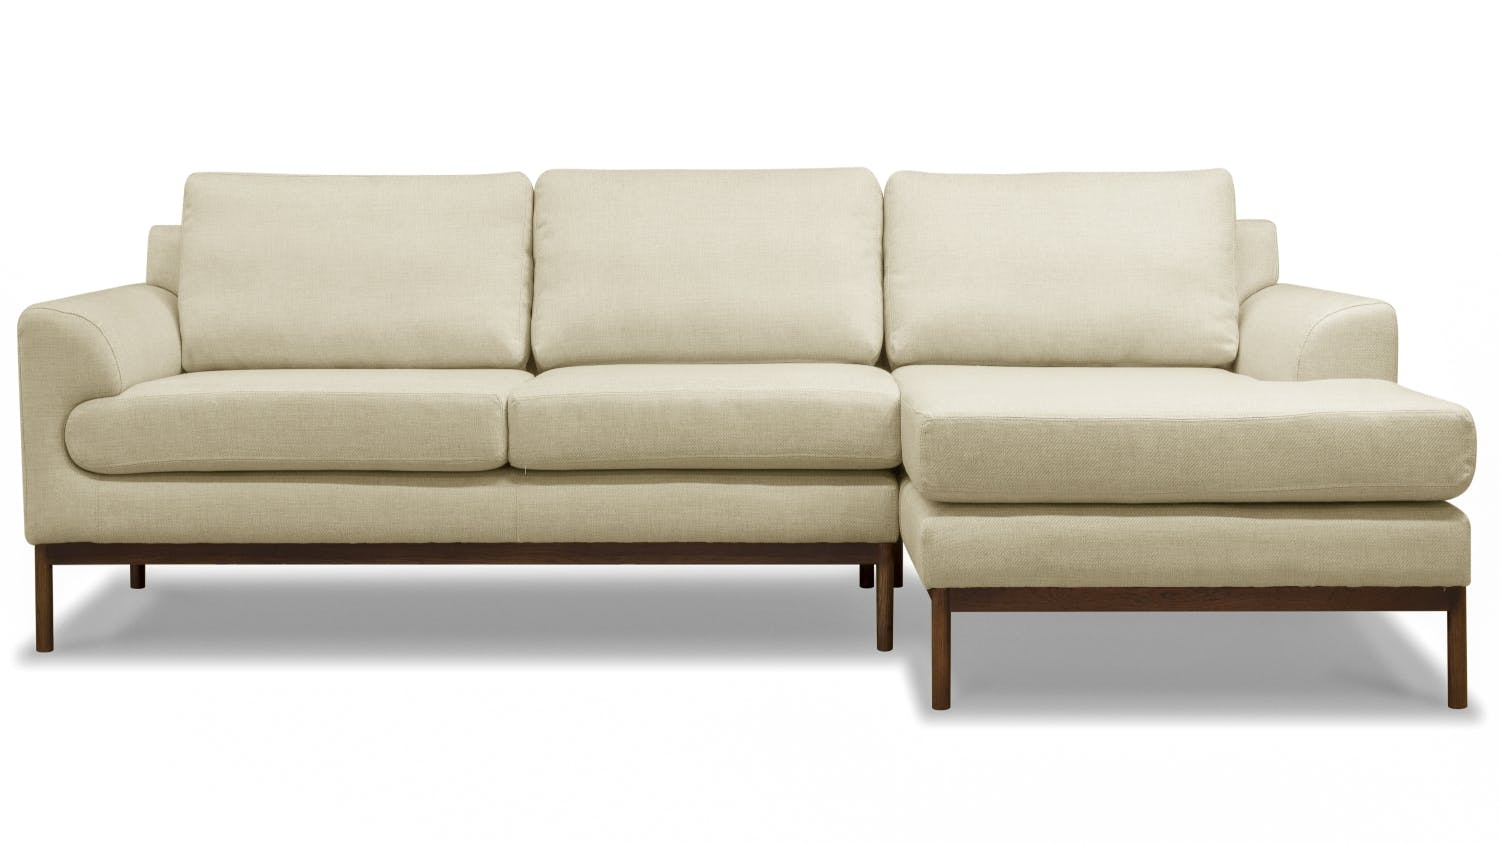 Stockholm 3 seater sofa with chaise beige harvey for 3 seat sofa with chaise